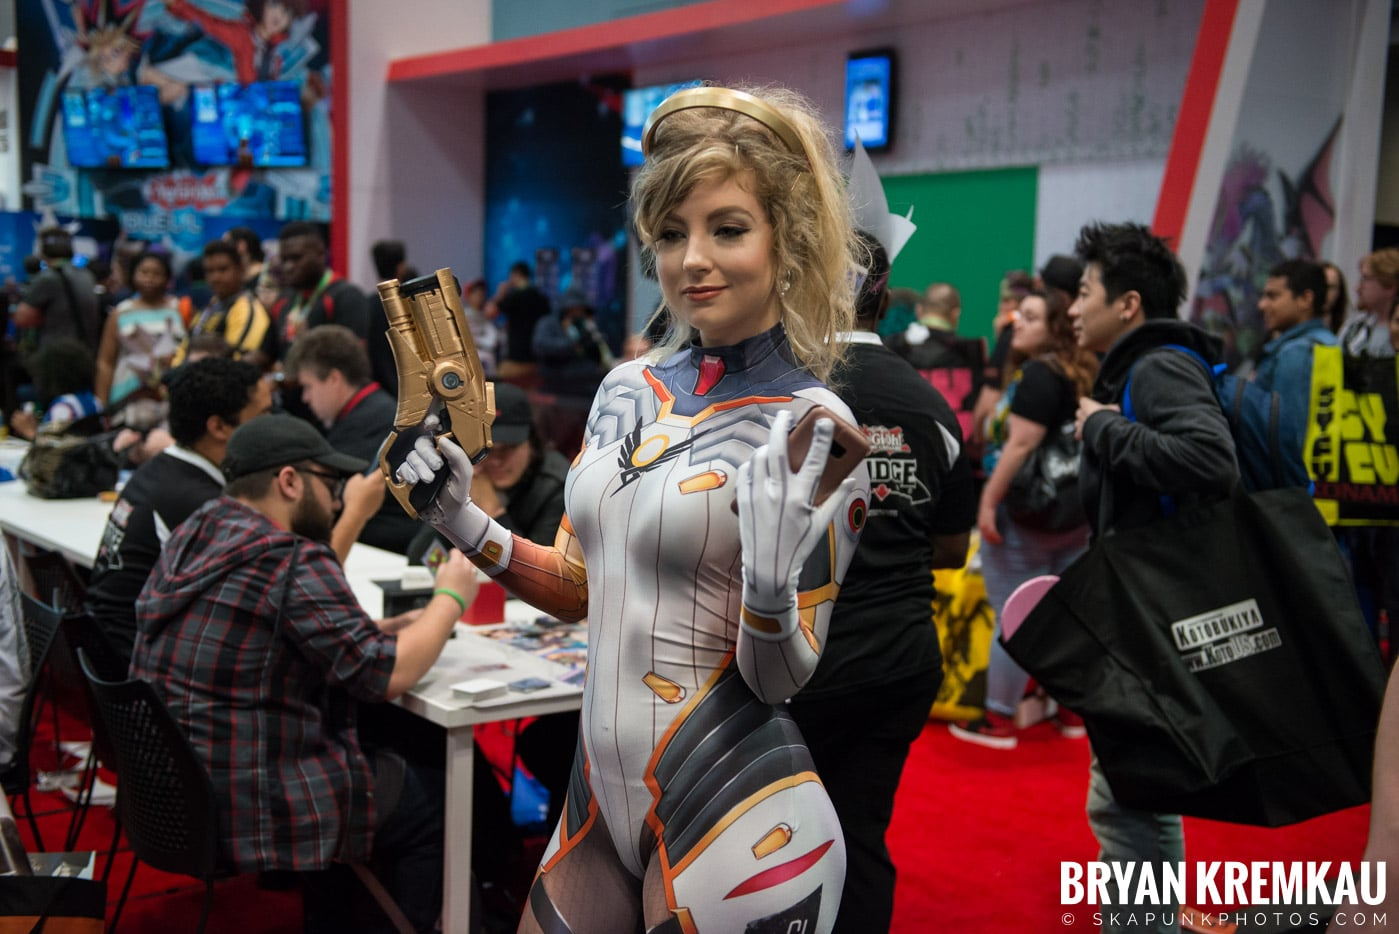 New York Comic Con 2017: Thursday - 10.5.17 (15)